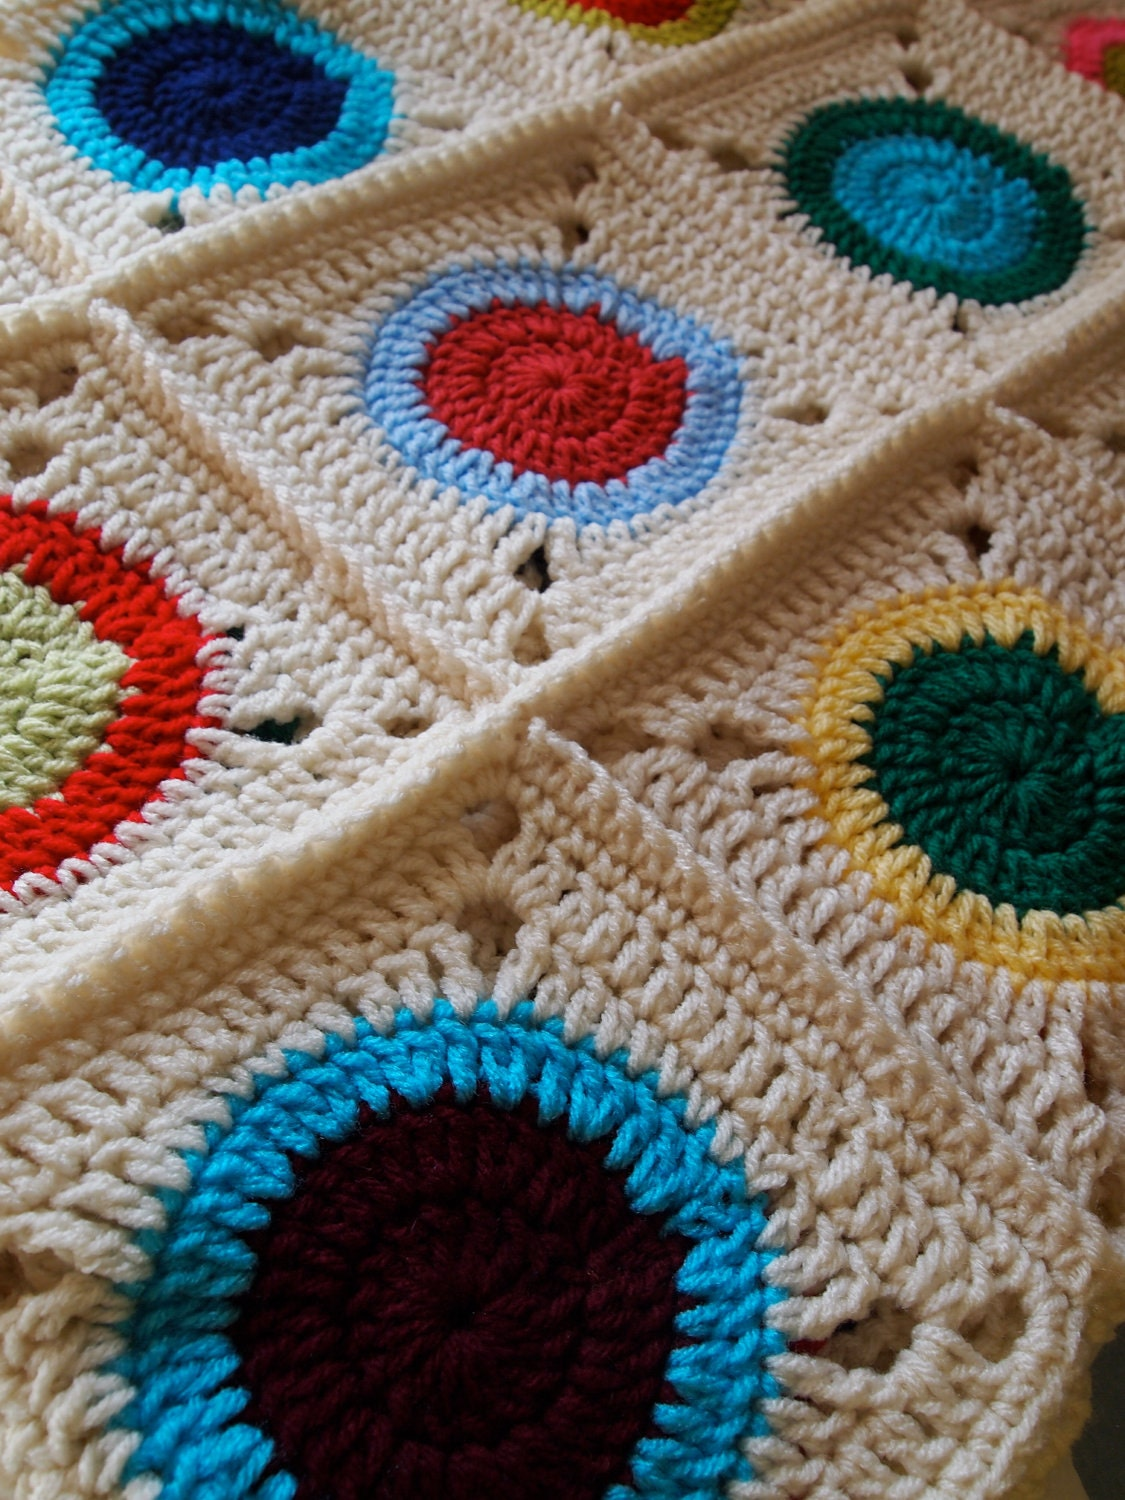 Crochet Blanket With Circle Granny Square In Cream And